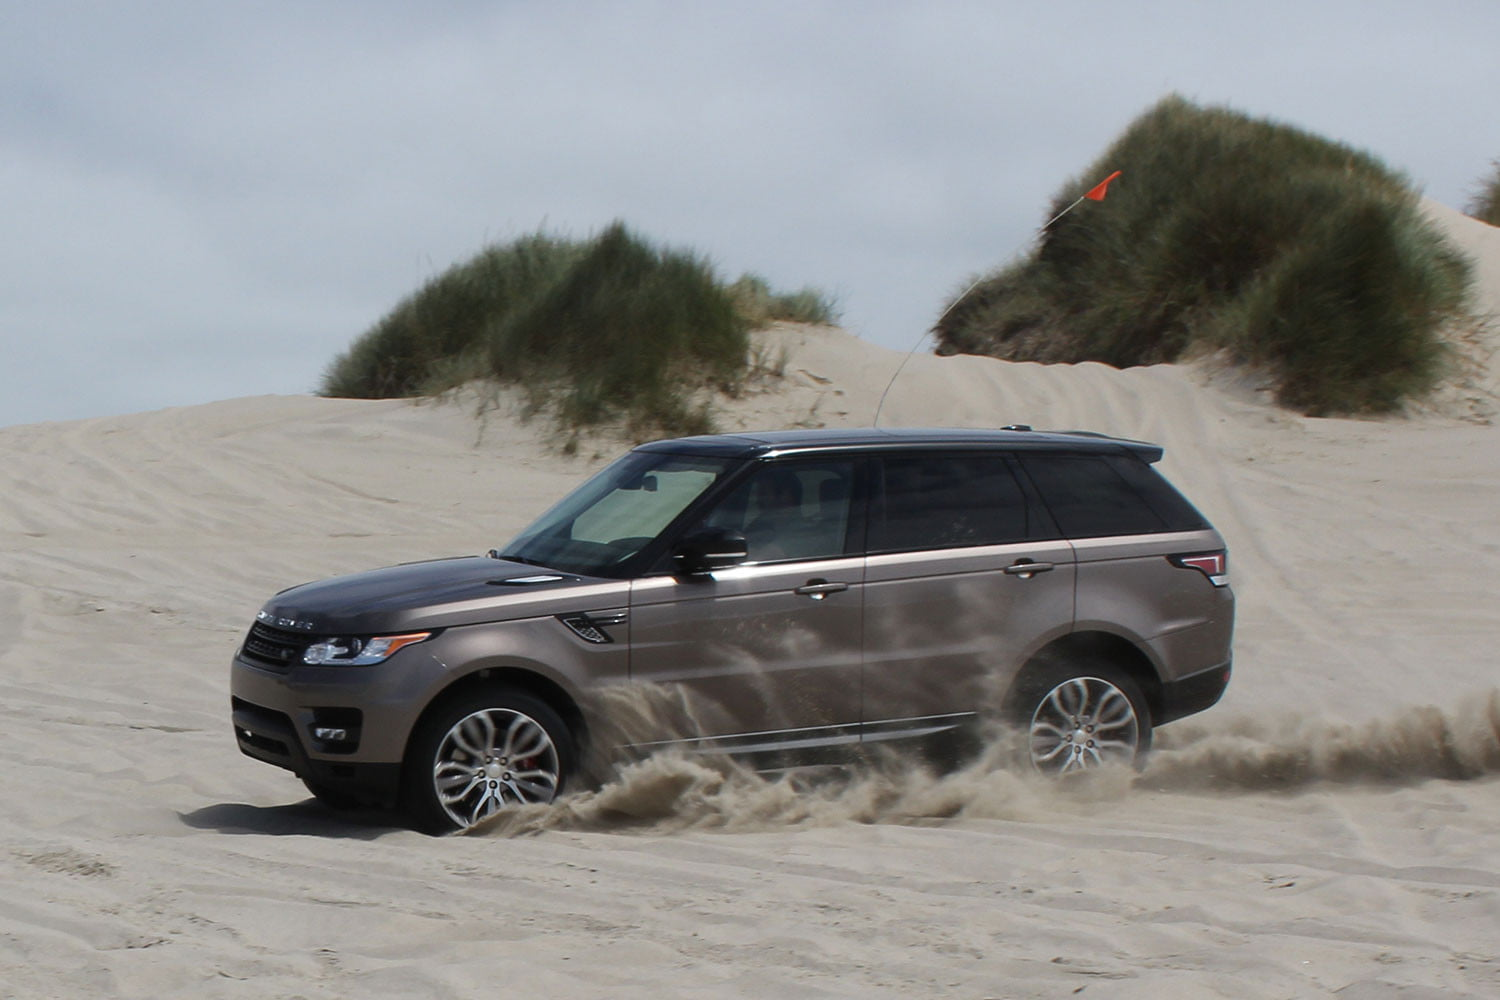 midsize landrover best luxury suv suvs sport affordable top price range rover land